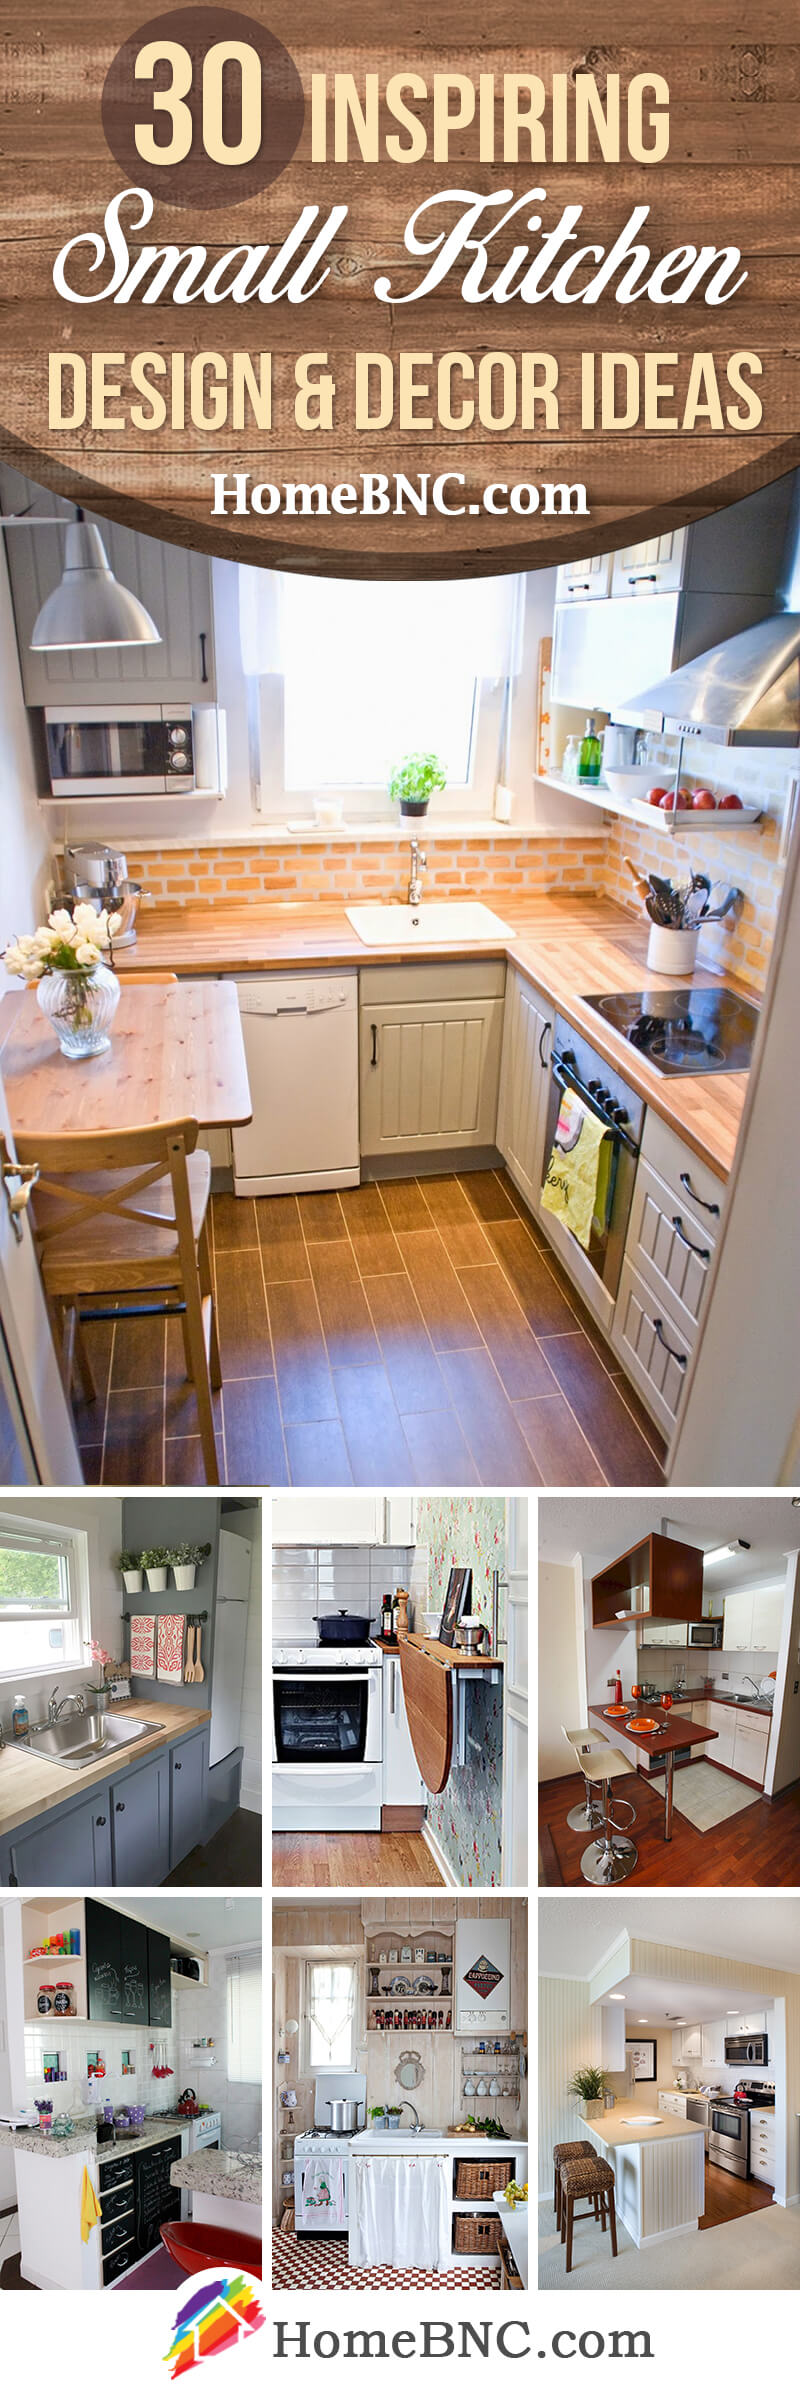 8 Best Small Kitchen Decor and Design Ideas for 8